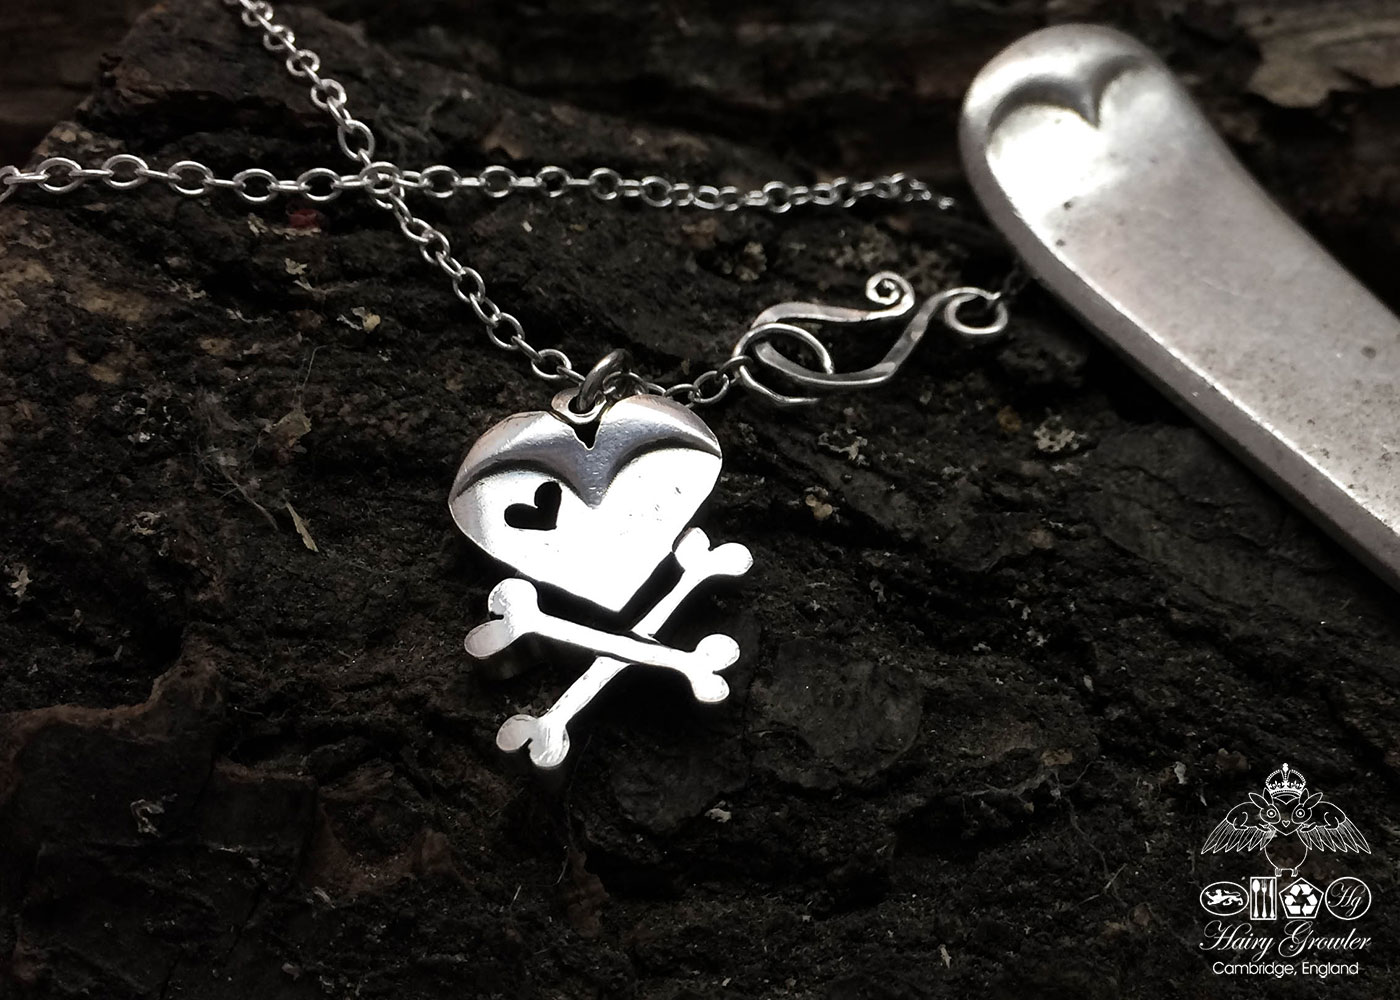 handcrafted and upcycled vintage spoon skull and crossbones necklace pendant